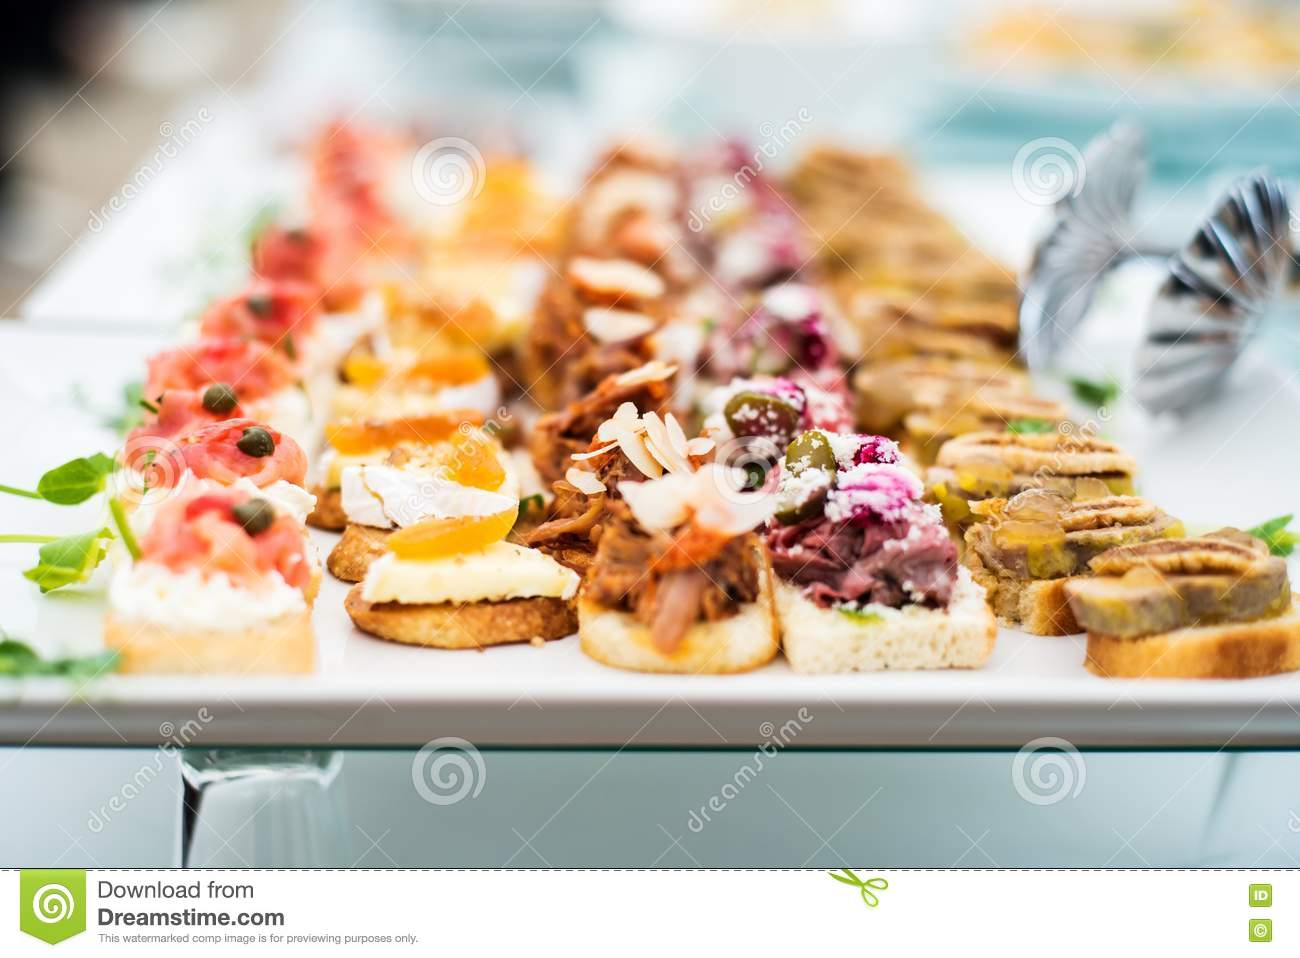 Variety of meat and fish canapes royalty free stock photo for Canape platters